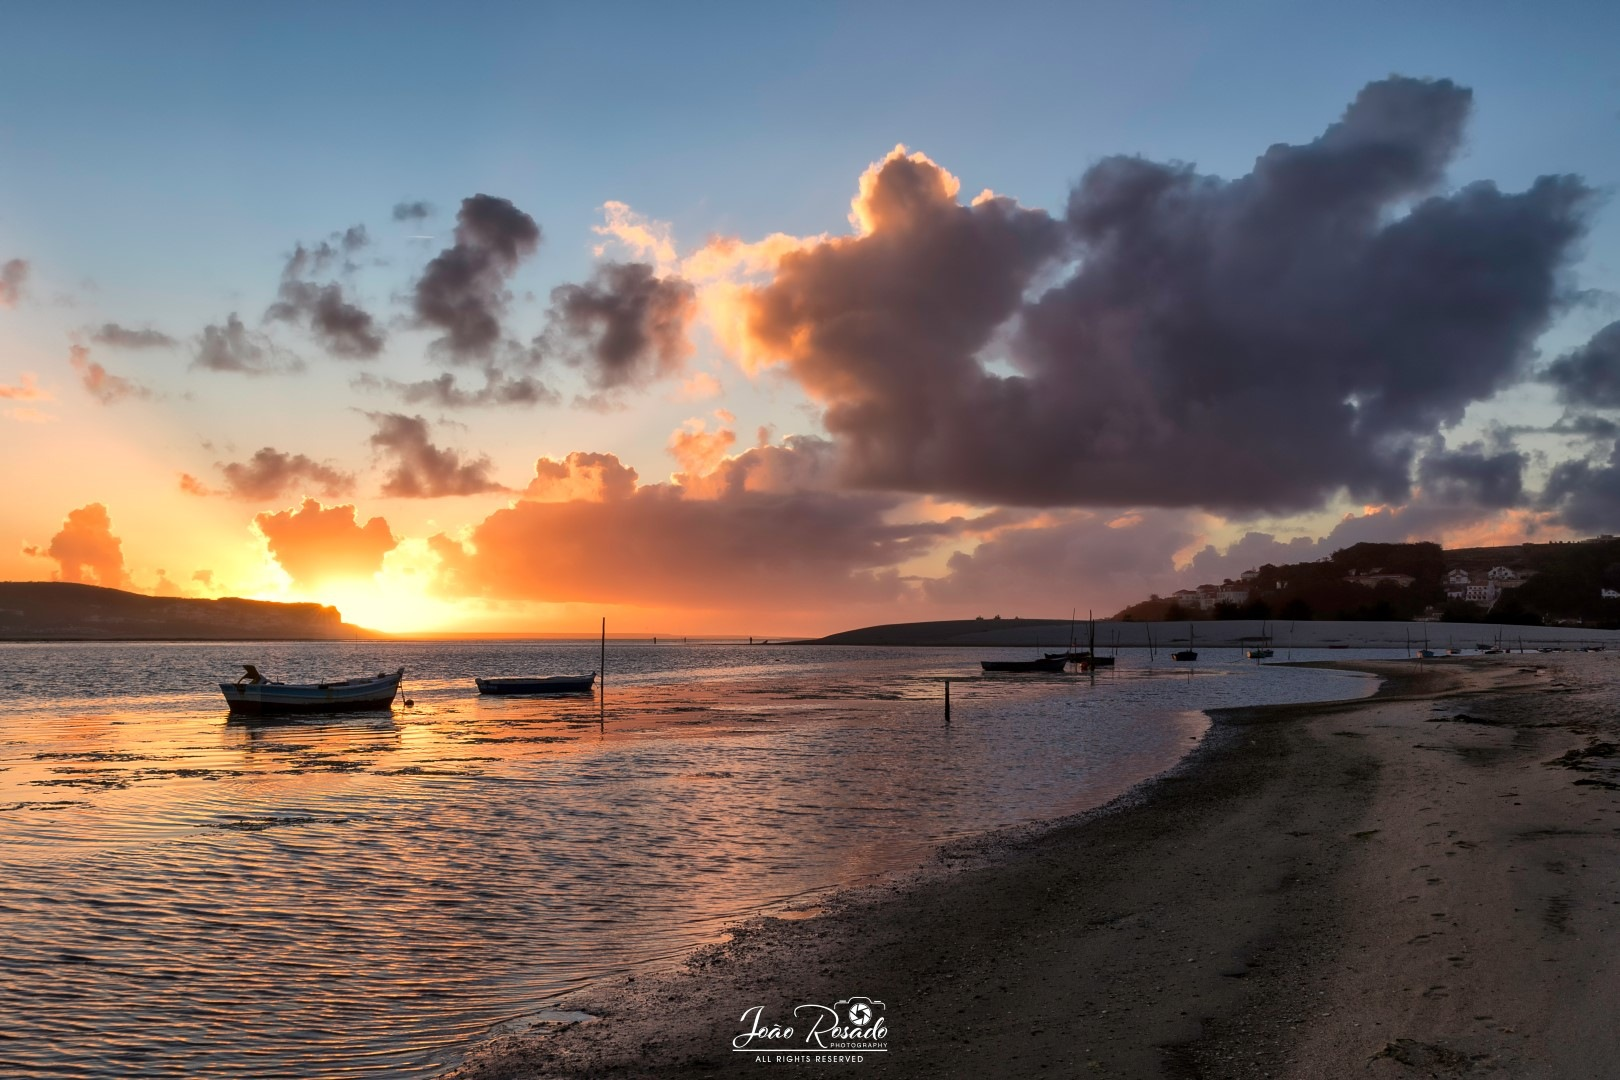 Sunset on the Lagoon by joao.m.rosado.9